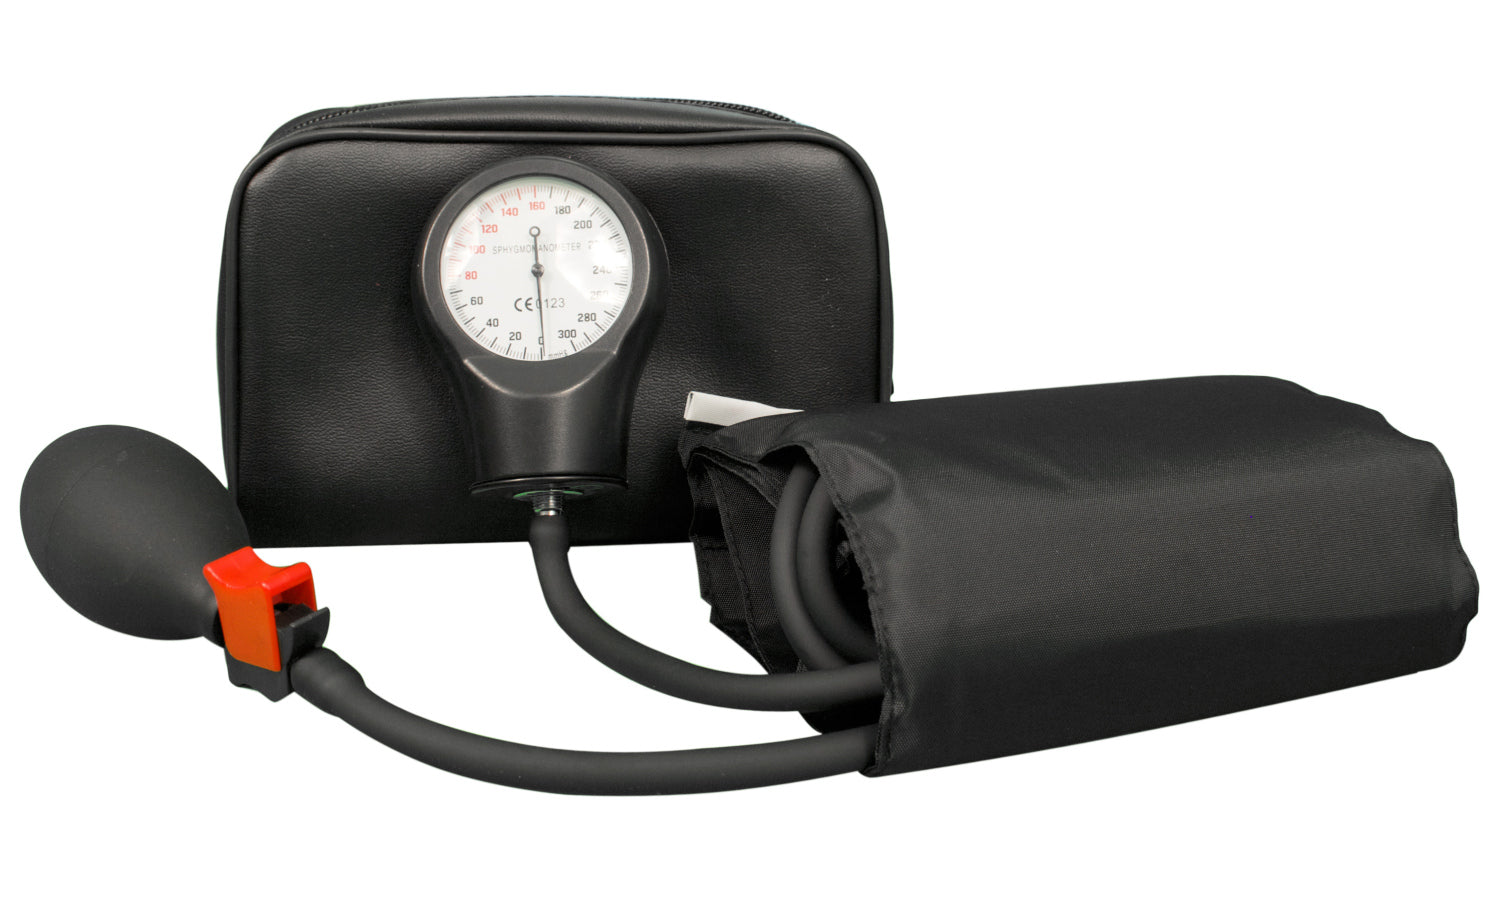 Sphygmomanometer_Concise_Type_Black.jpg